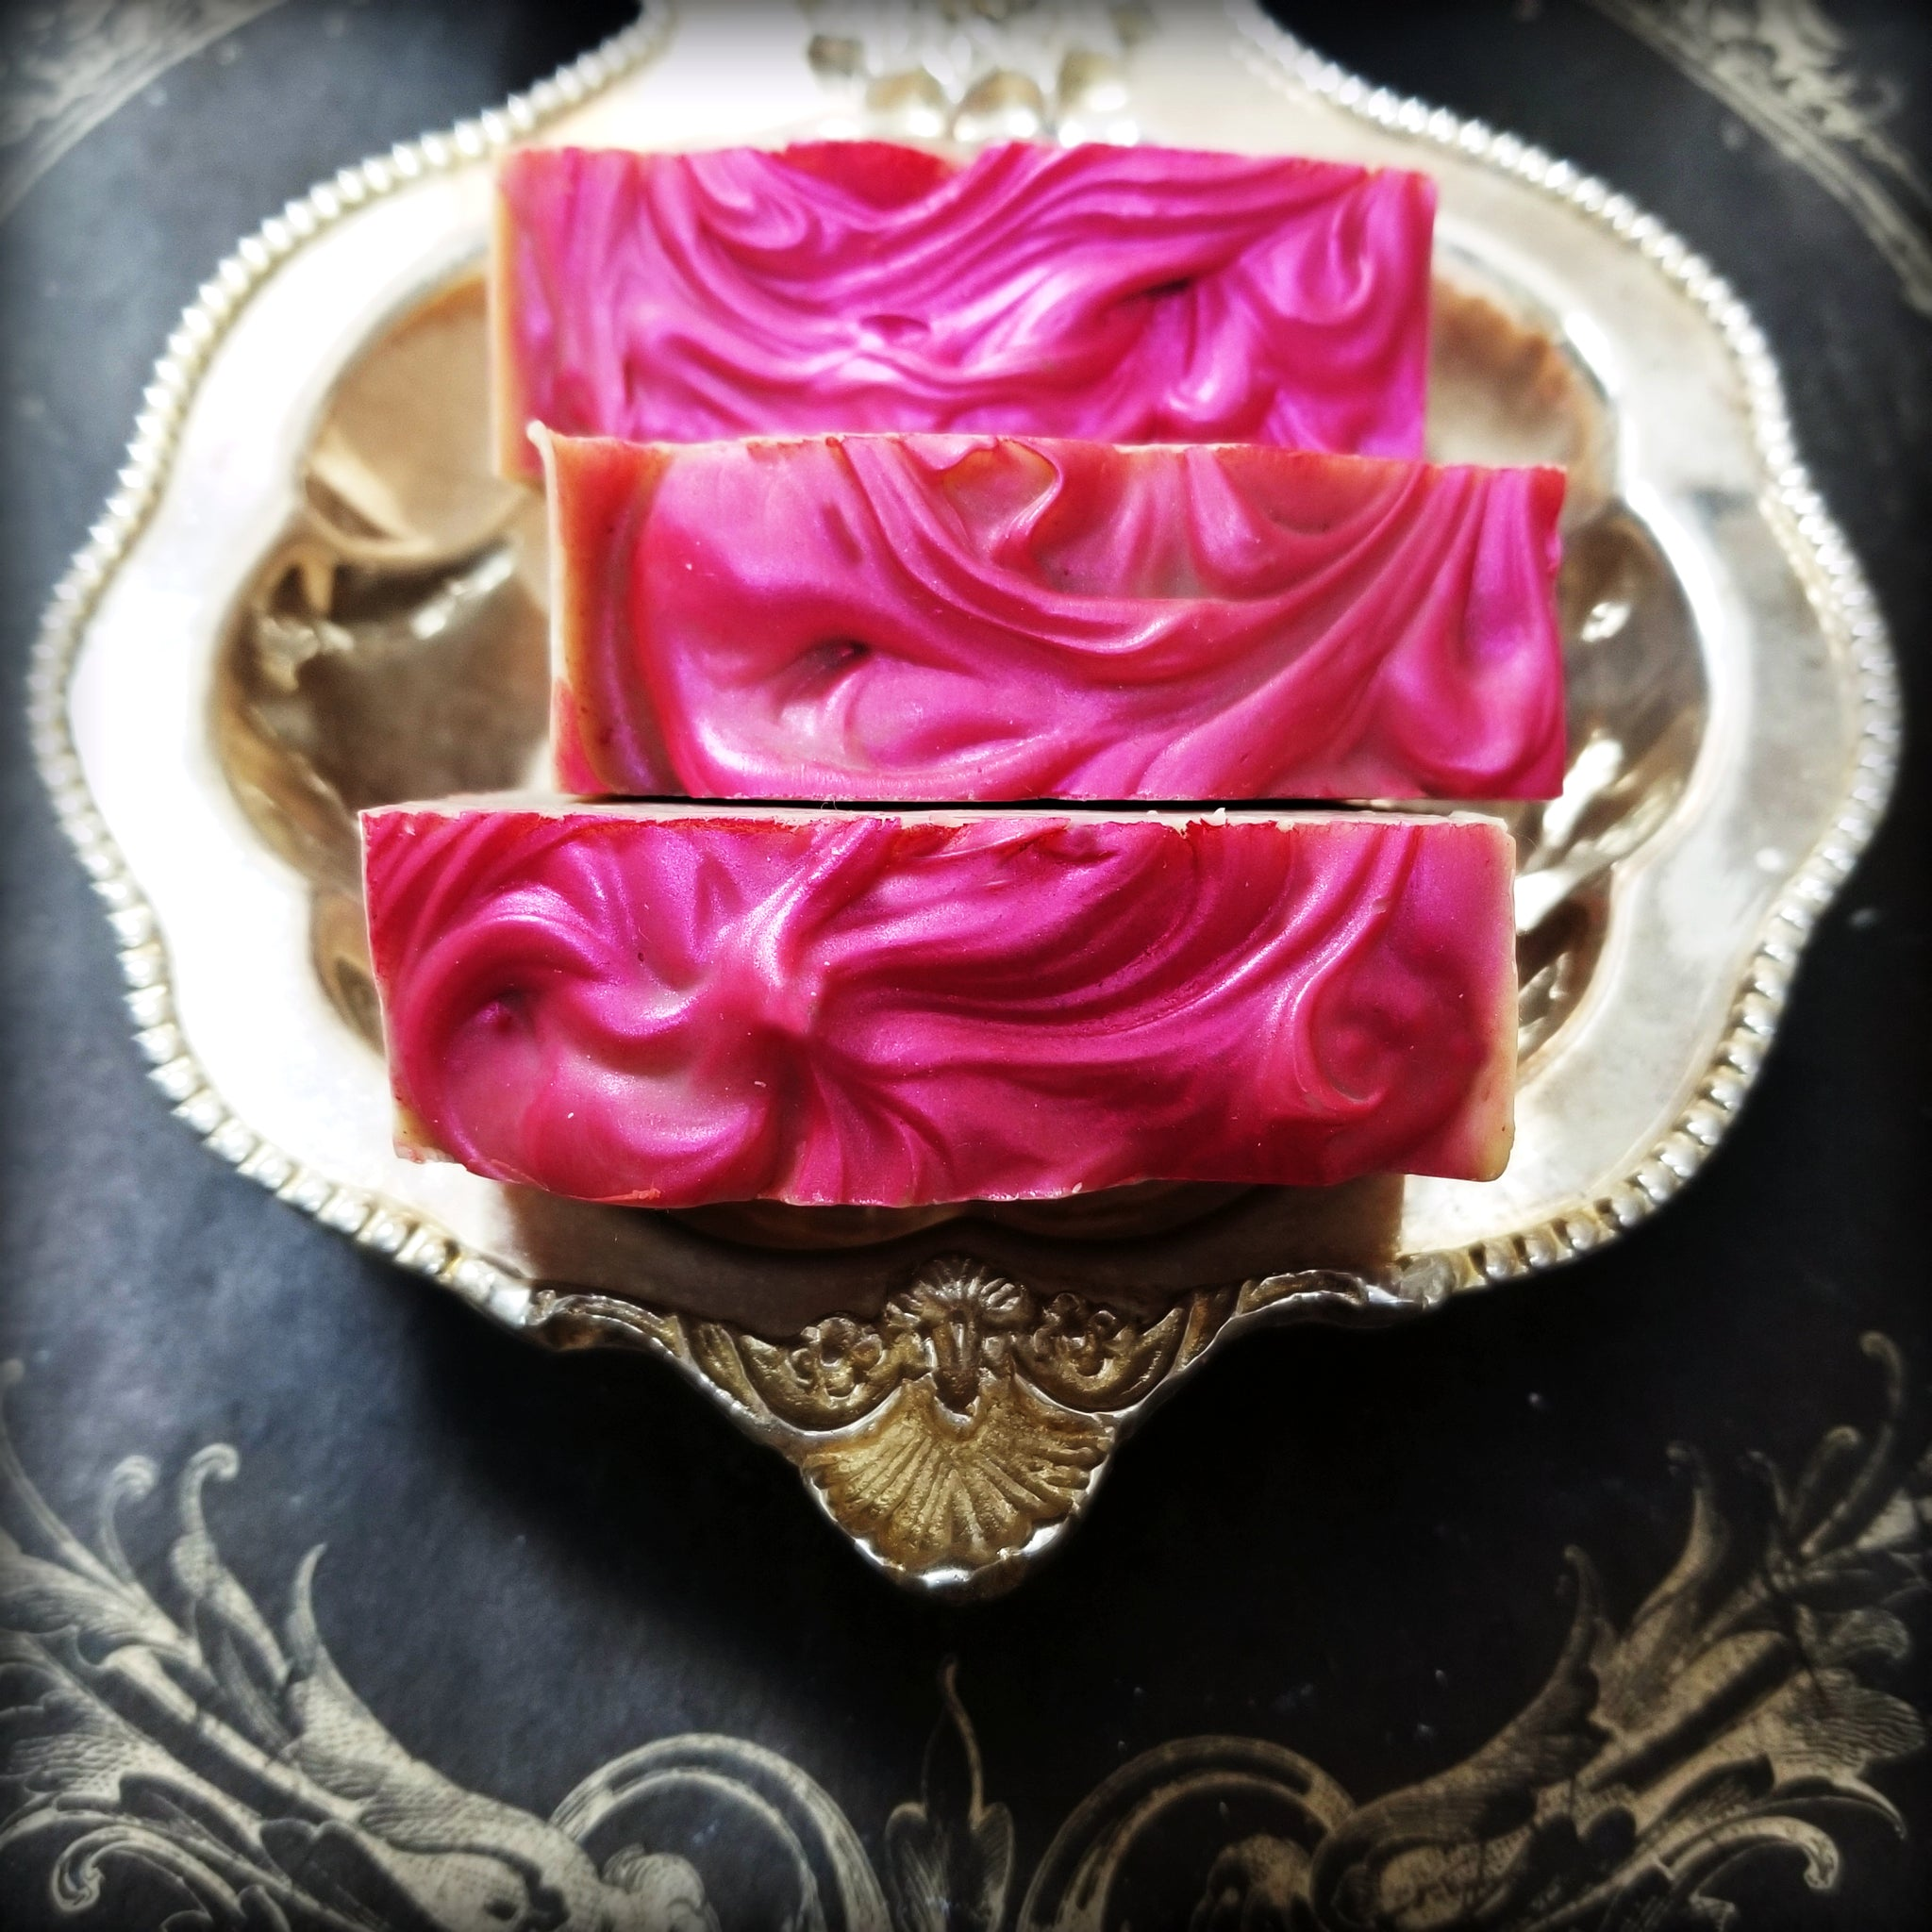 ARSENIC & OLD LACE SOAP